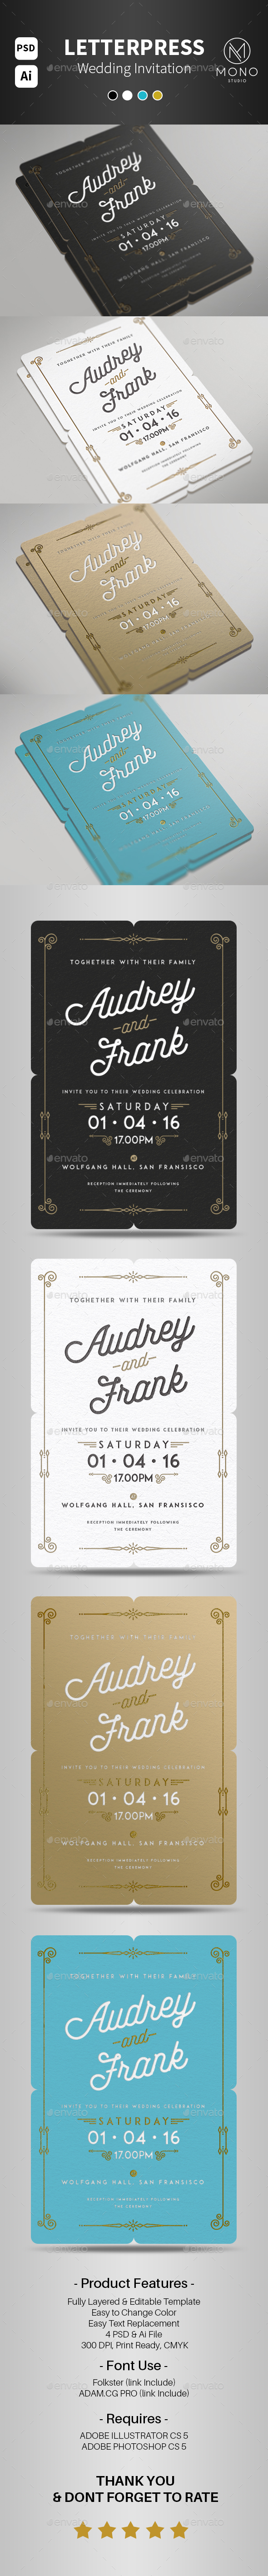 Letterpress Wedding Invitation - Weddings Cards & Invites